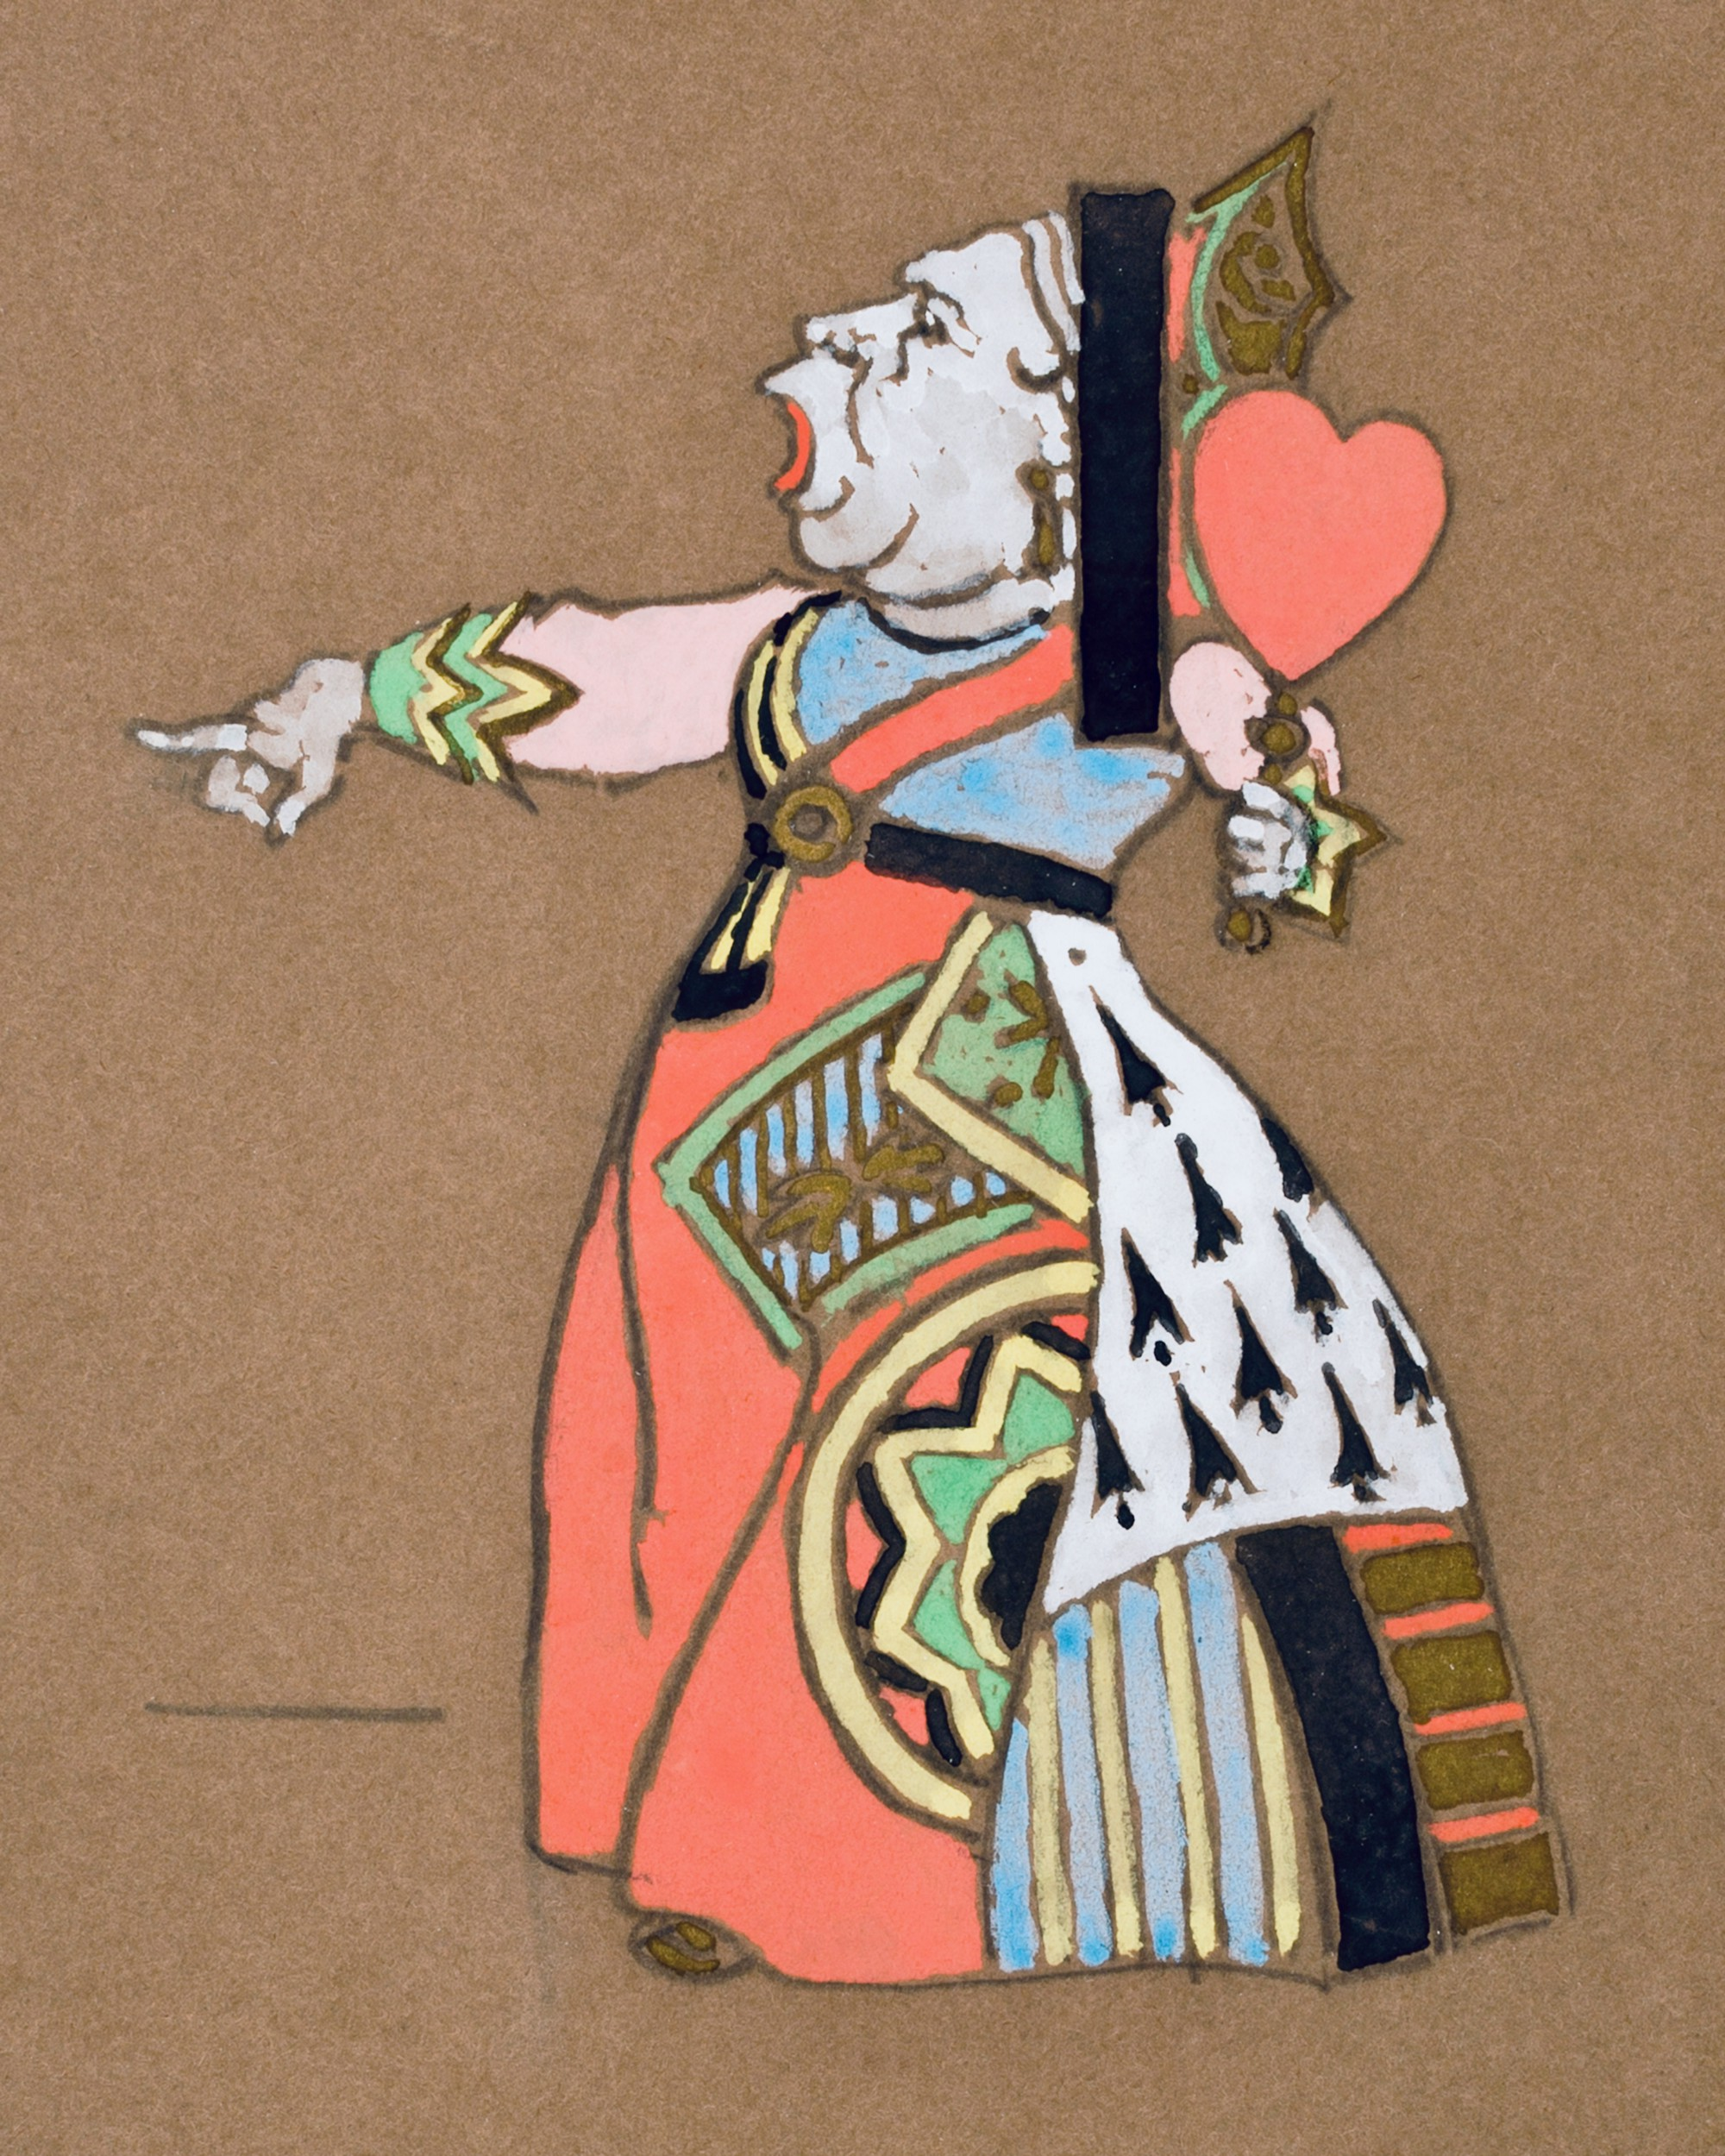 Vintage artwork of the Queen of Hearts, the epitome of blind (and perimenopausal) fury, from Alice's Adventures in Wonderland.